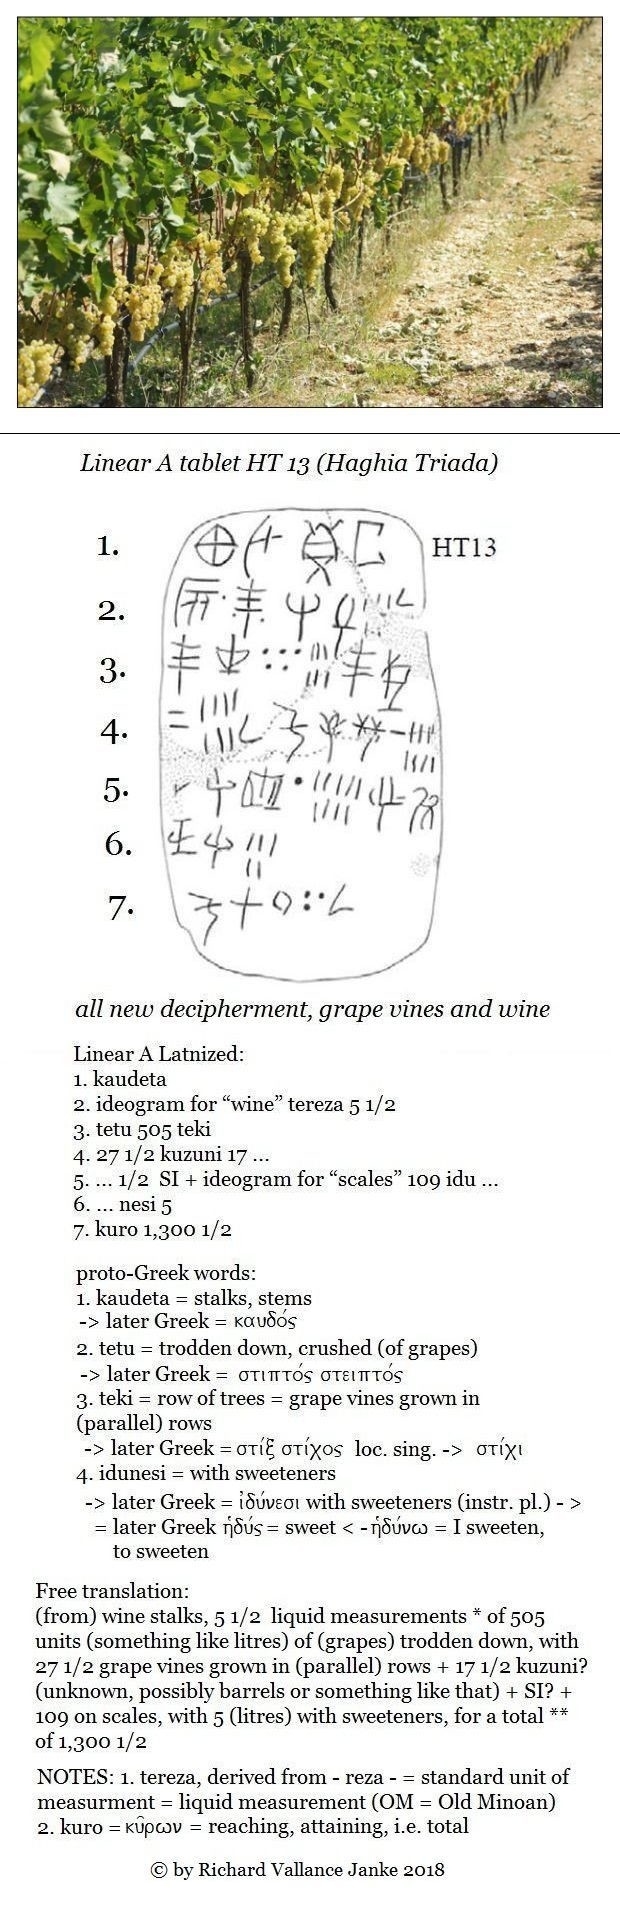 Linear A tablet HT 13 Haghia Triada grapes & wine